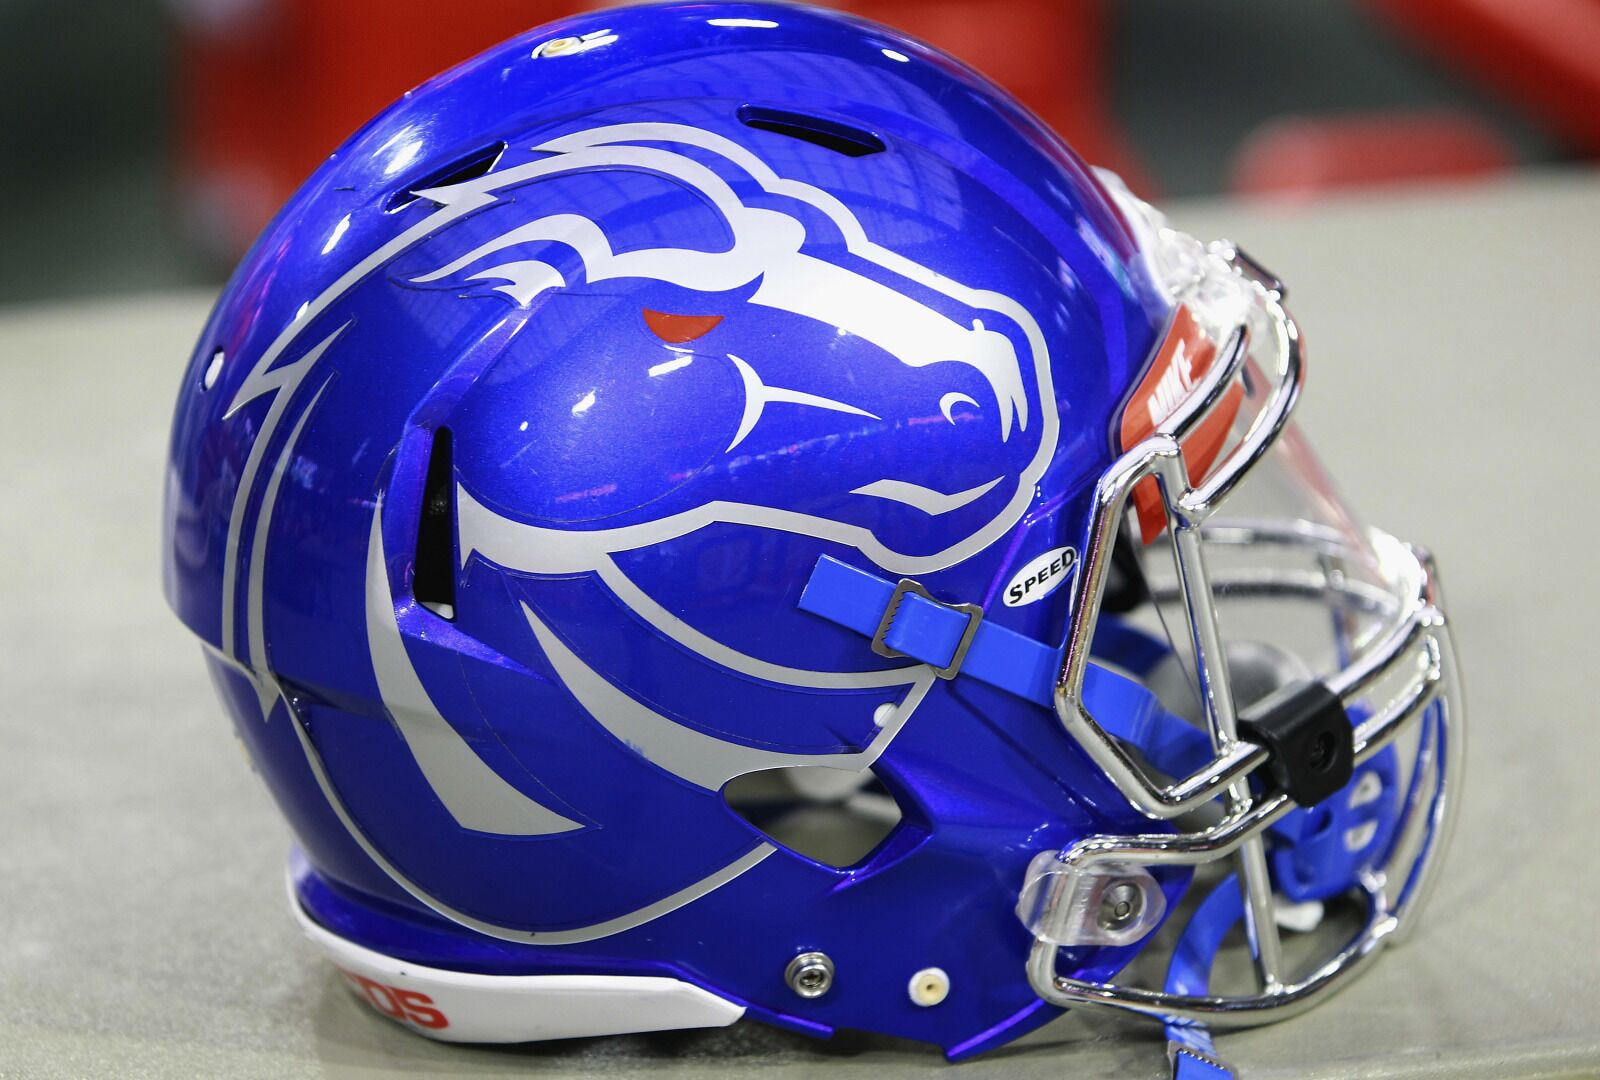 Boise State football looks to continue march toward New Year's Six vs. Air Force